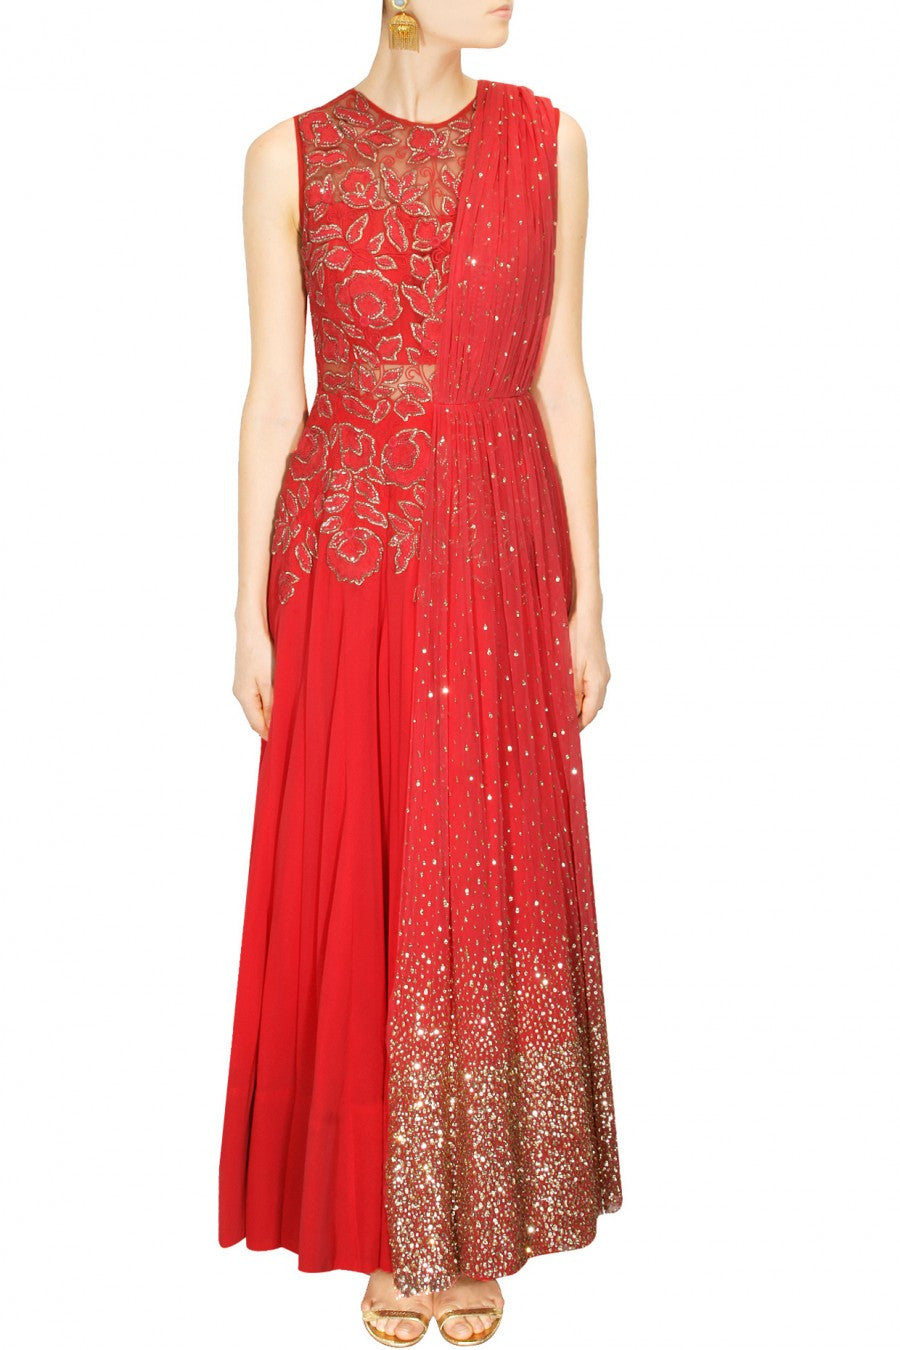 Ridhi Mehra Red colour embroidered anarkali with attached dupatta